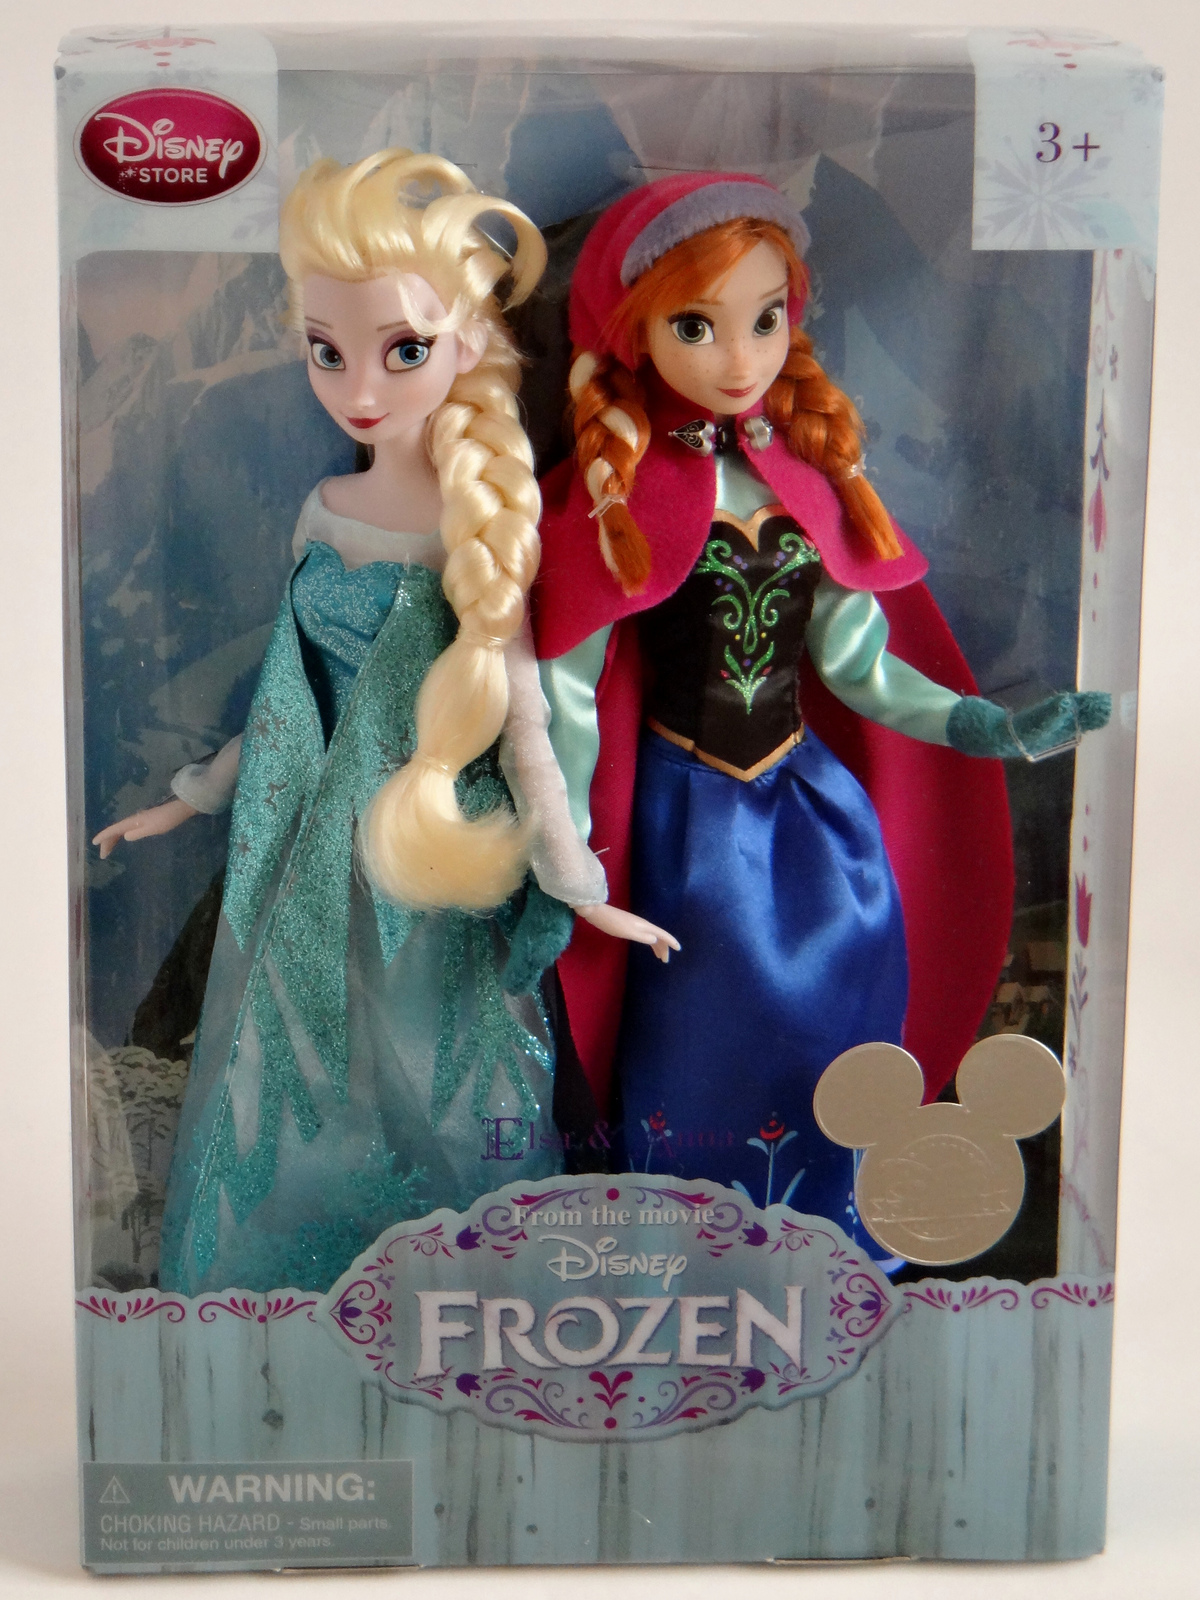 frozen elsa and anna 11 39 39 doll set disney store elsa and anna photo 35933958 fanpop. Black Bedroom Furniture Sets. Home Design Ideas